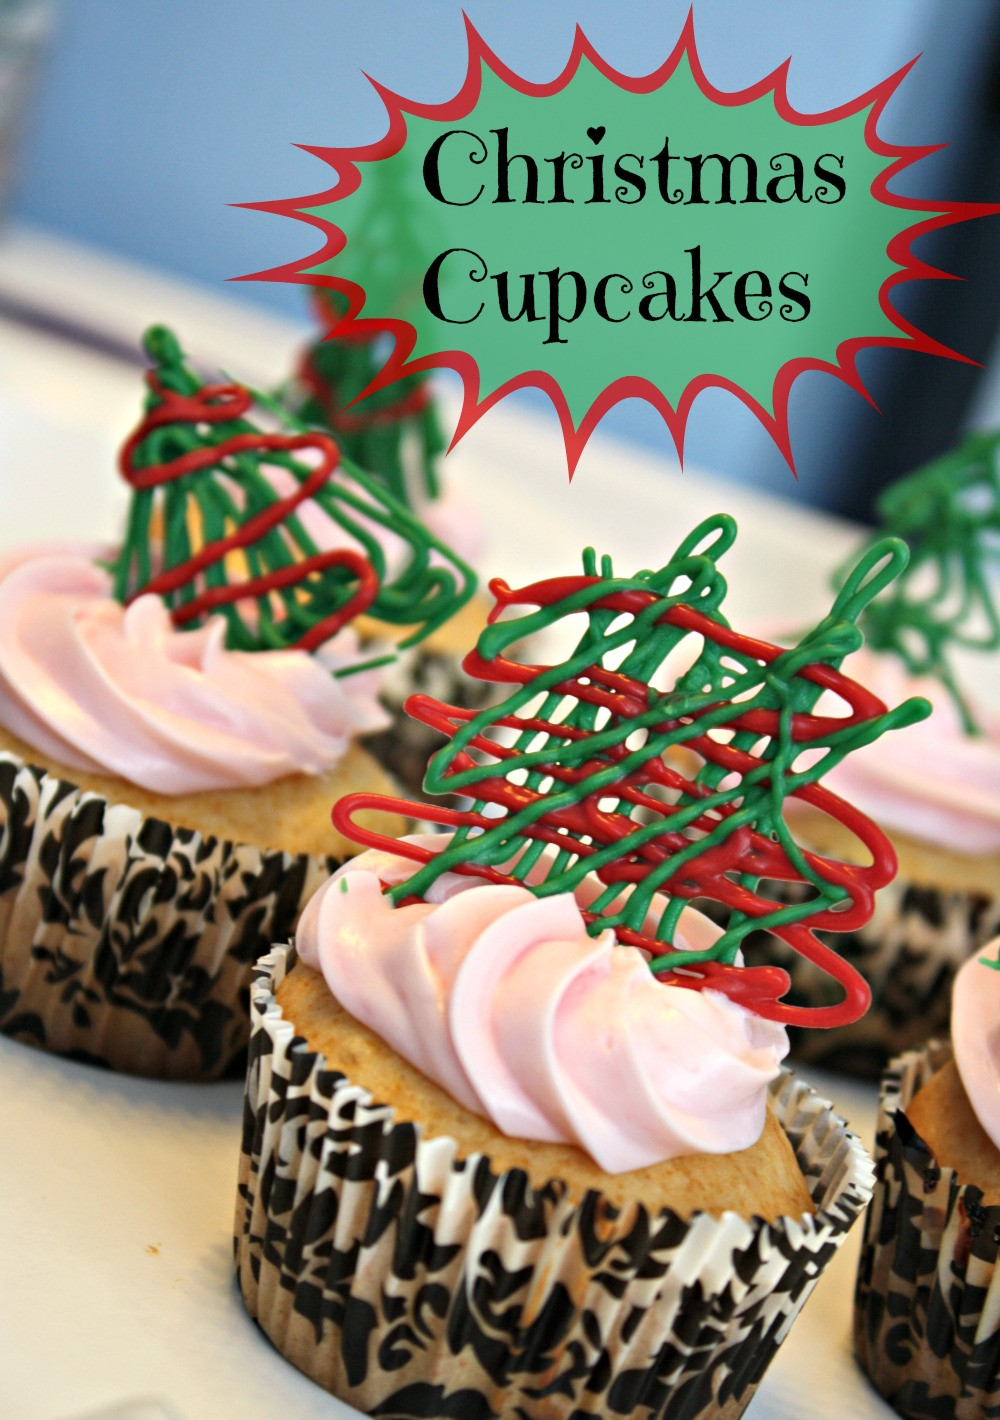 Easy Christmas Cupcakes Recipe  Easy Christmas Cupcakes with Drizzled Chocolate Recipe